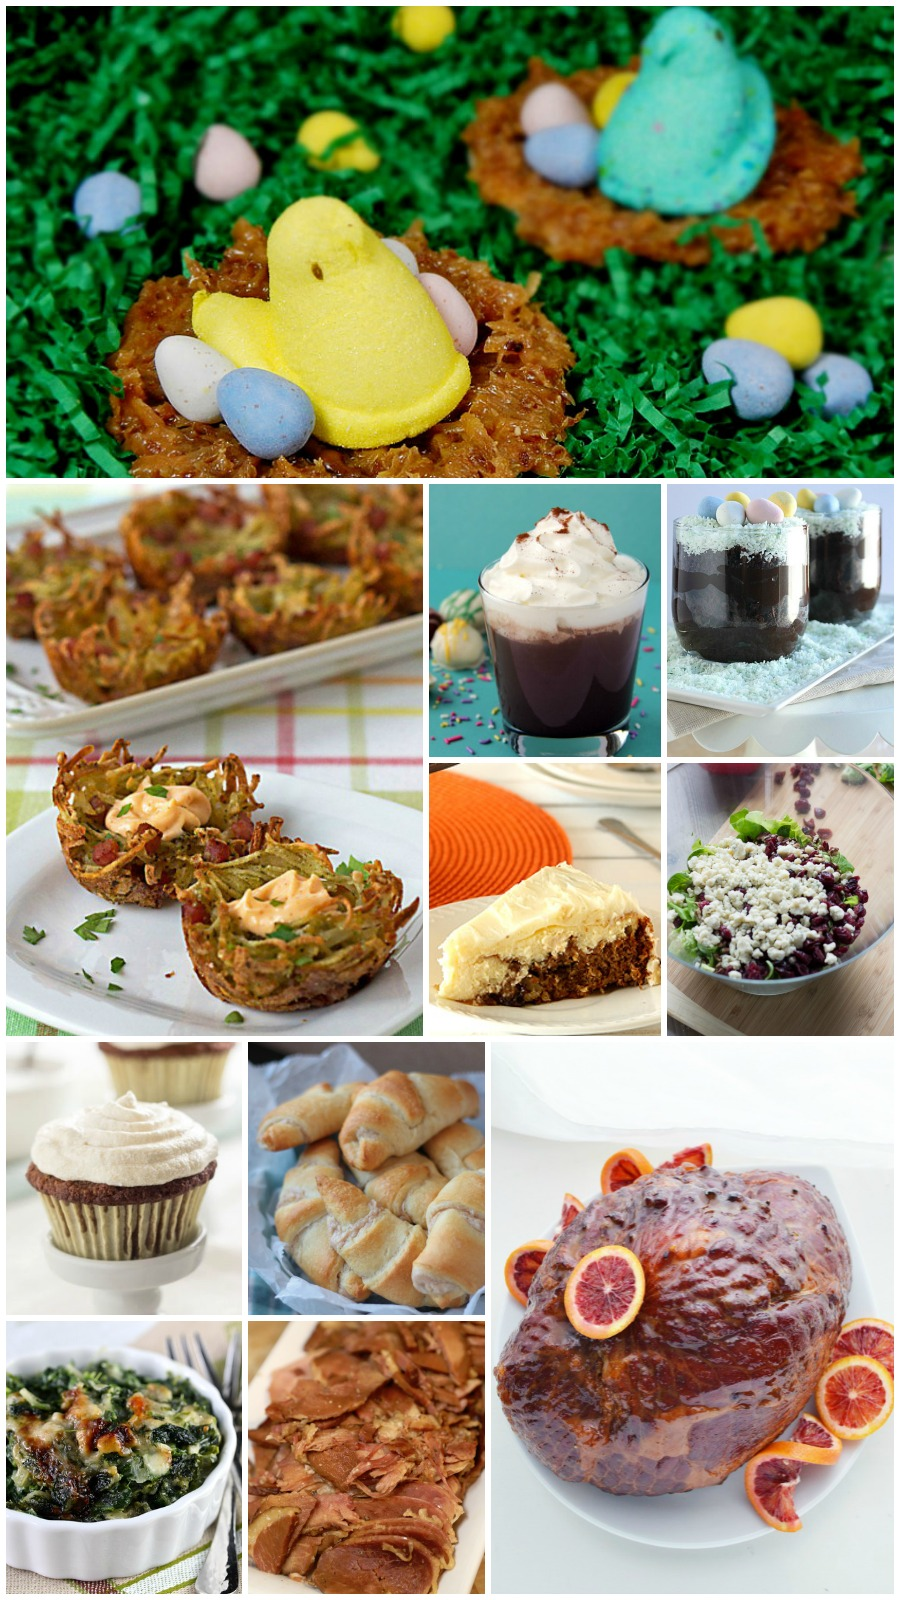 35+ Easter Dinner Recipes- A great collection full of dinner ideas from appetizers to desserts!